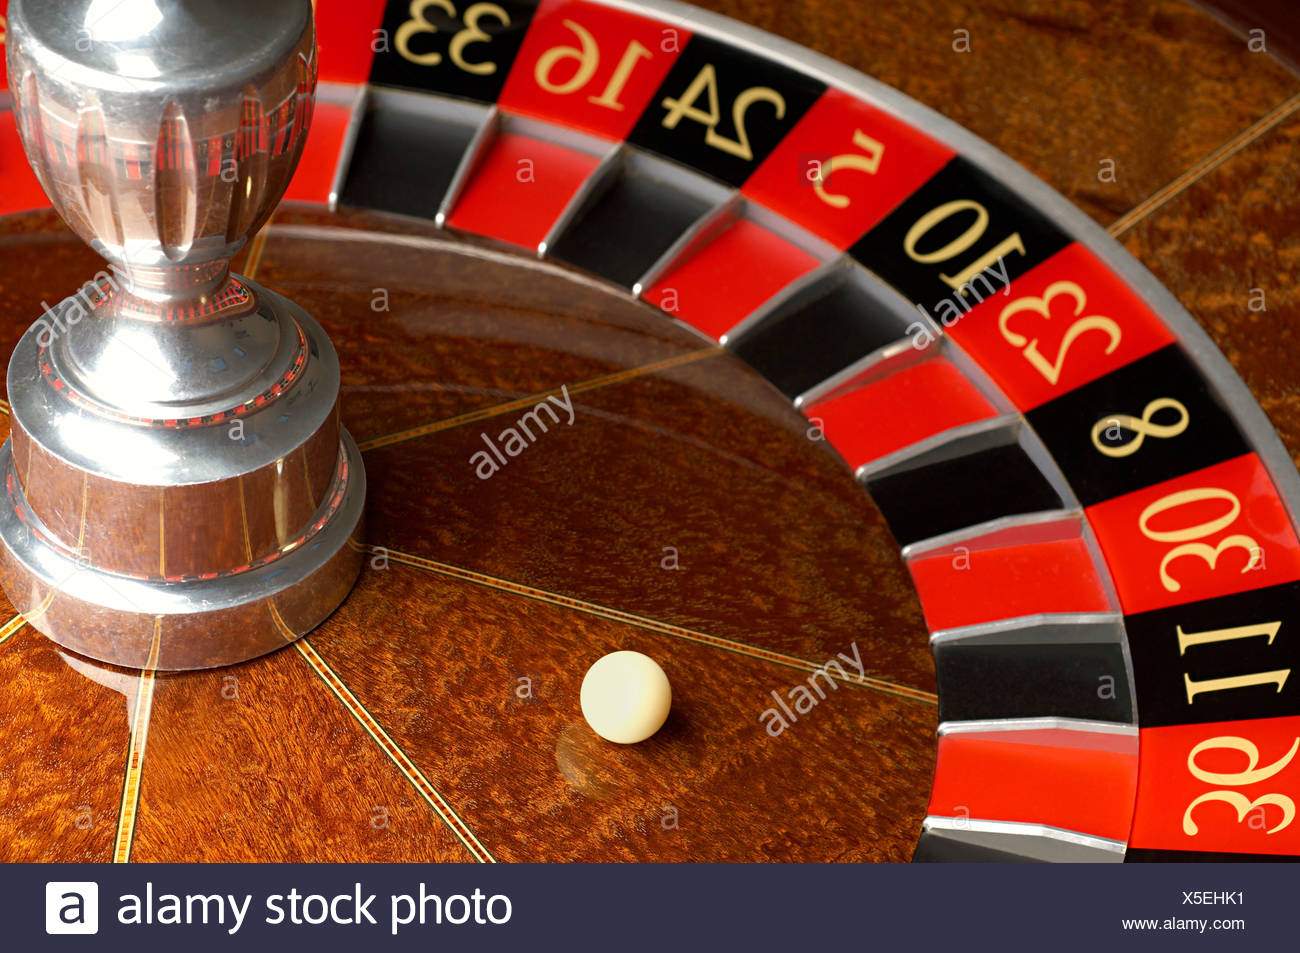 Roulette wheel and ball - Stock Image